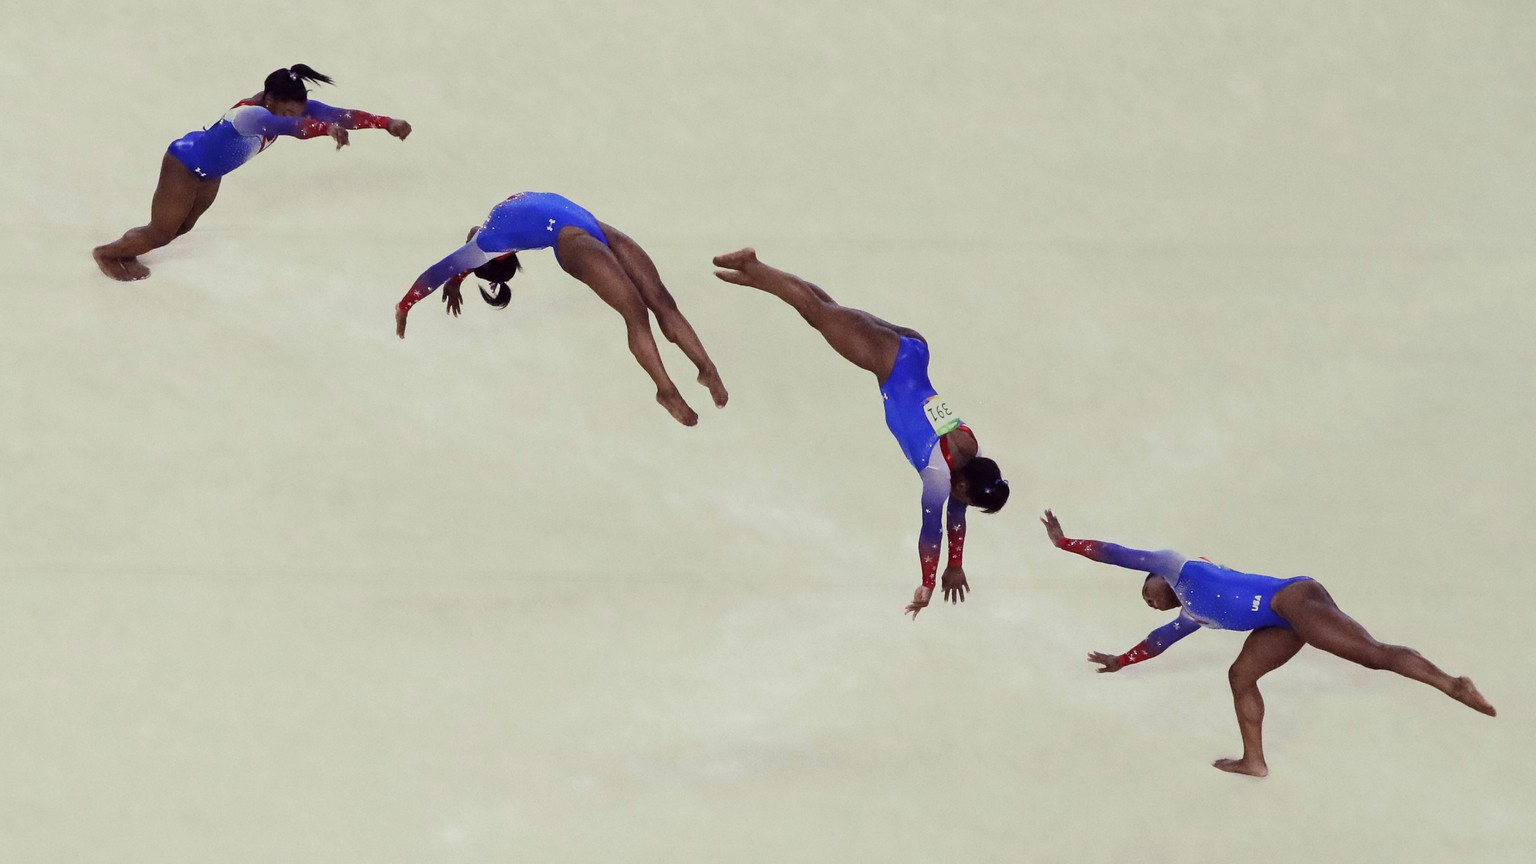 In this multiple exposure photo, United States' Simone Biles performs on the floor during the artistic gymnastics women's apparatus final at the 2016 Summer Olympics in Rio de Janeiro, Brazil, Tuesday, Aug. 16, 2016. (AP Photo/Julio Cortez)